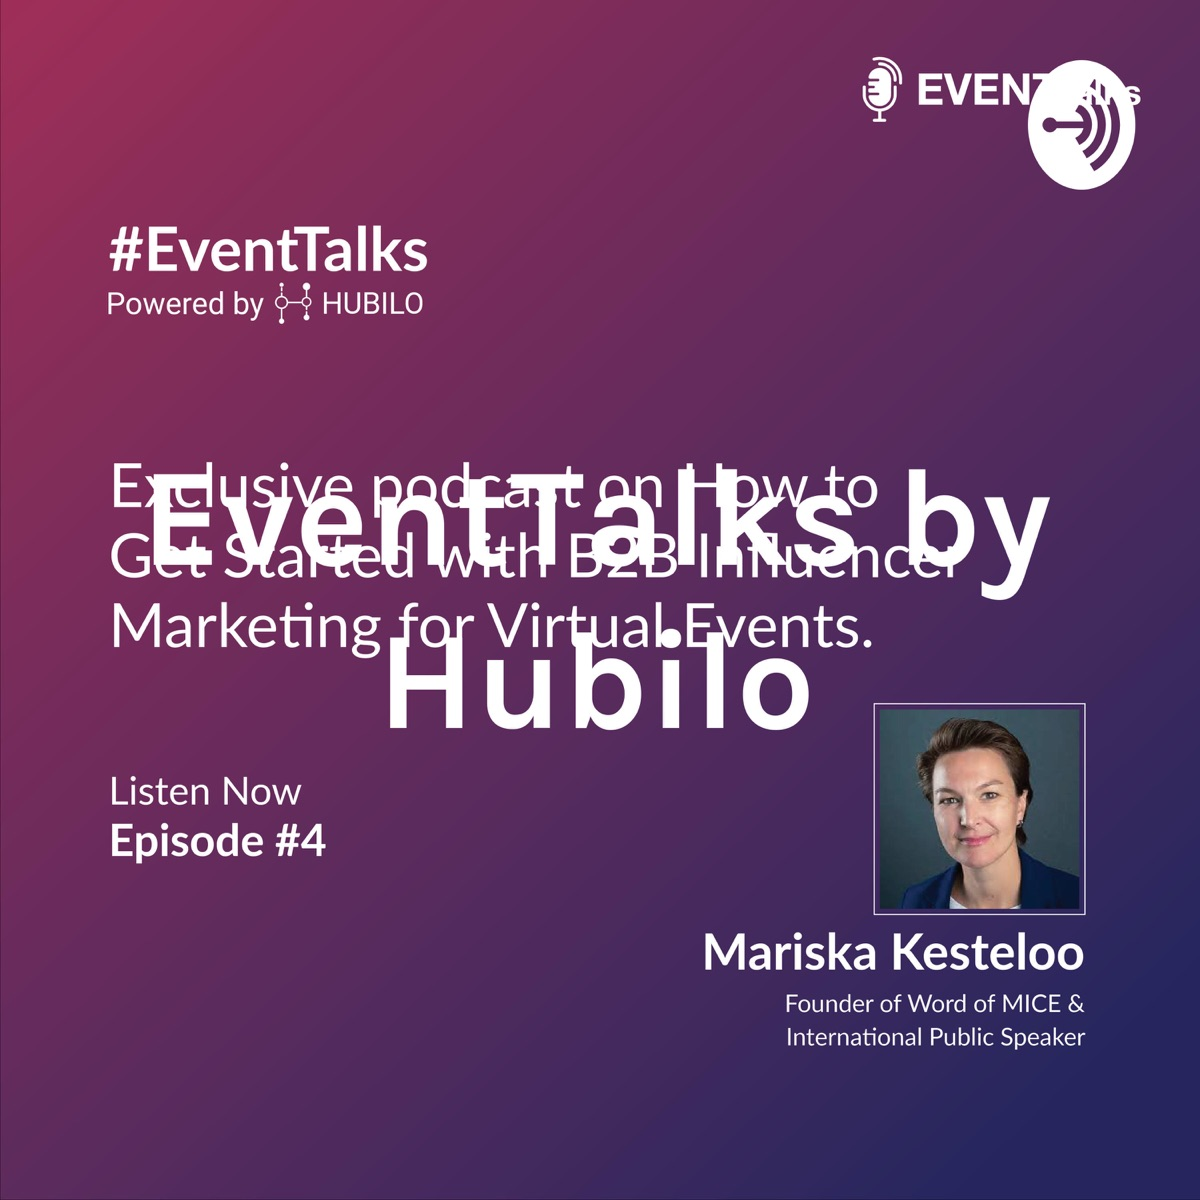 EventTalks by Hubilo - An Event Experience Podcast